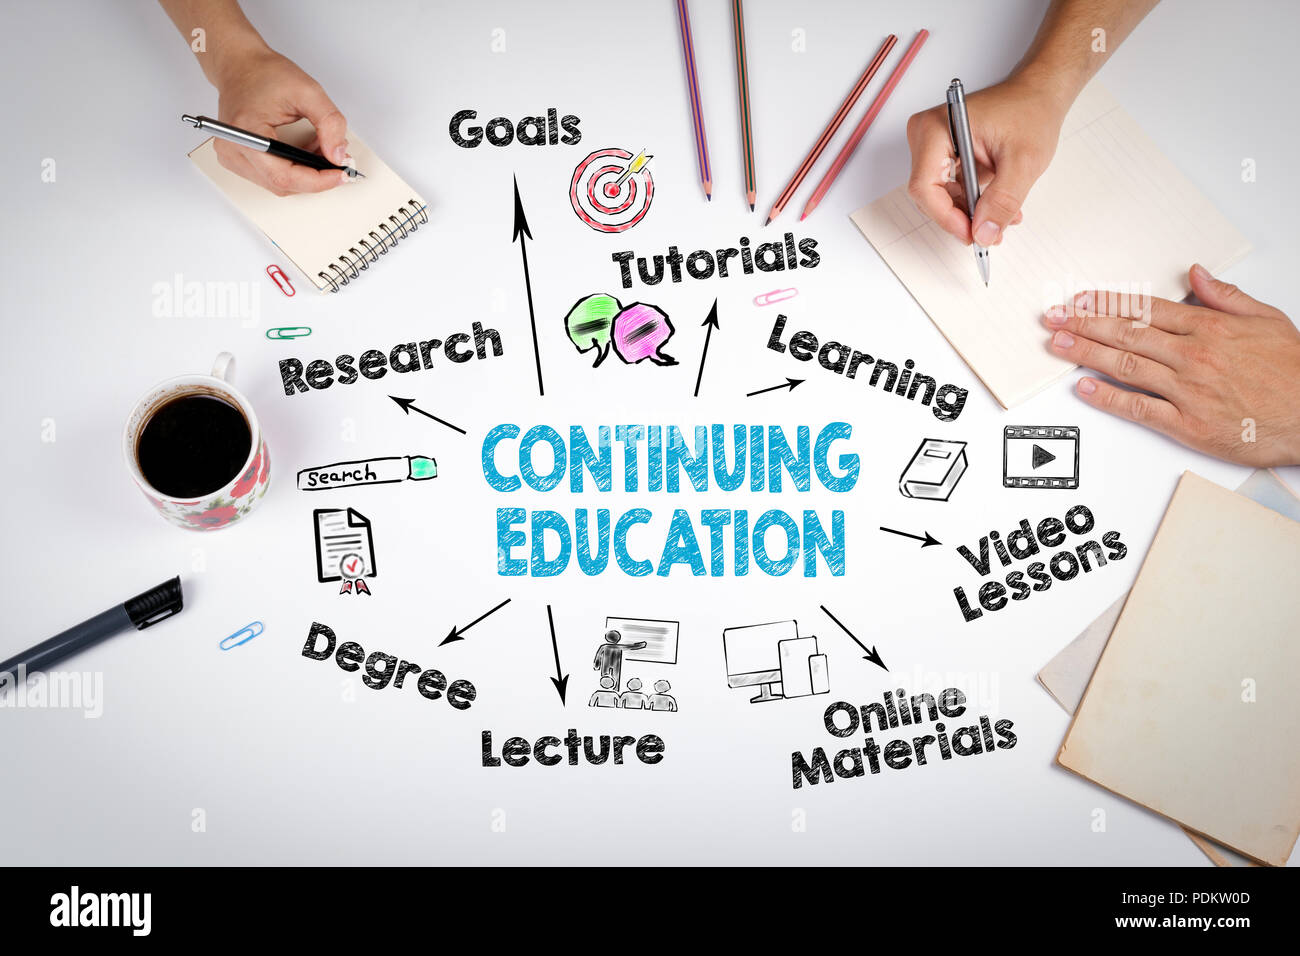 Continuing Education Concept - Stock Image